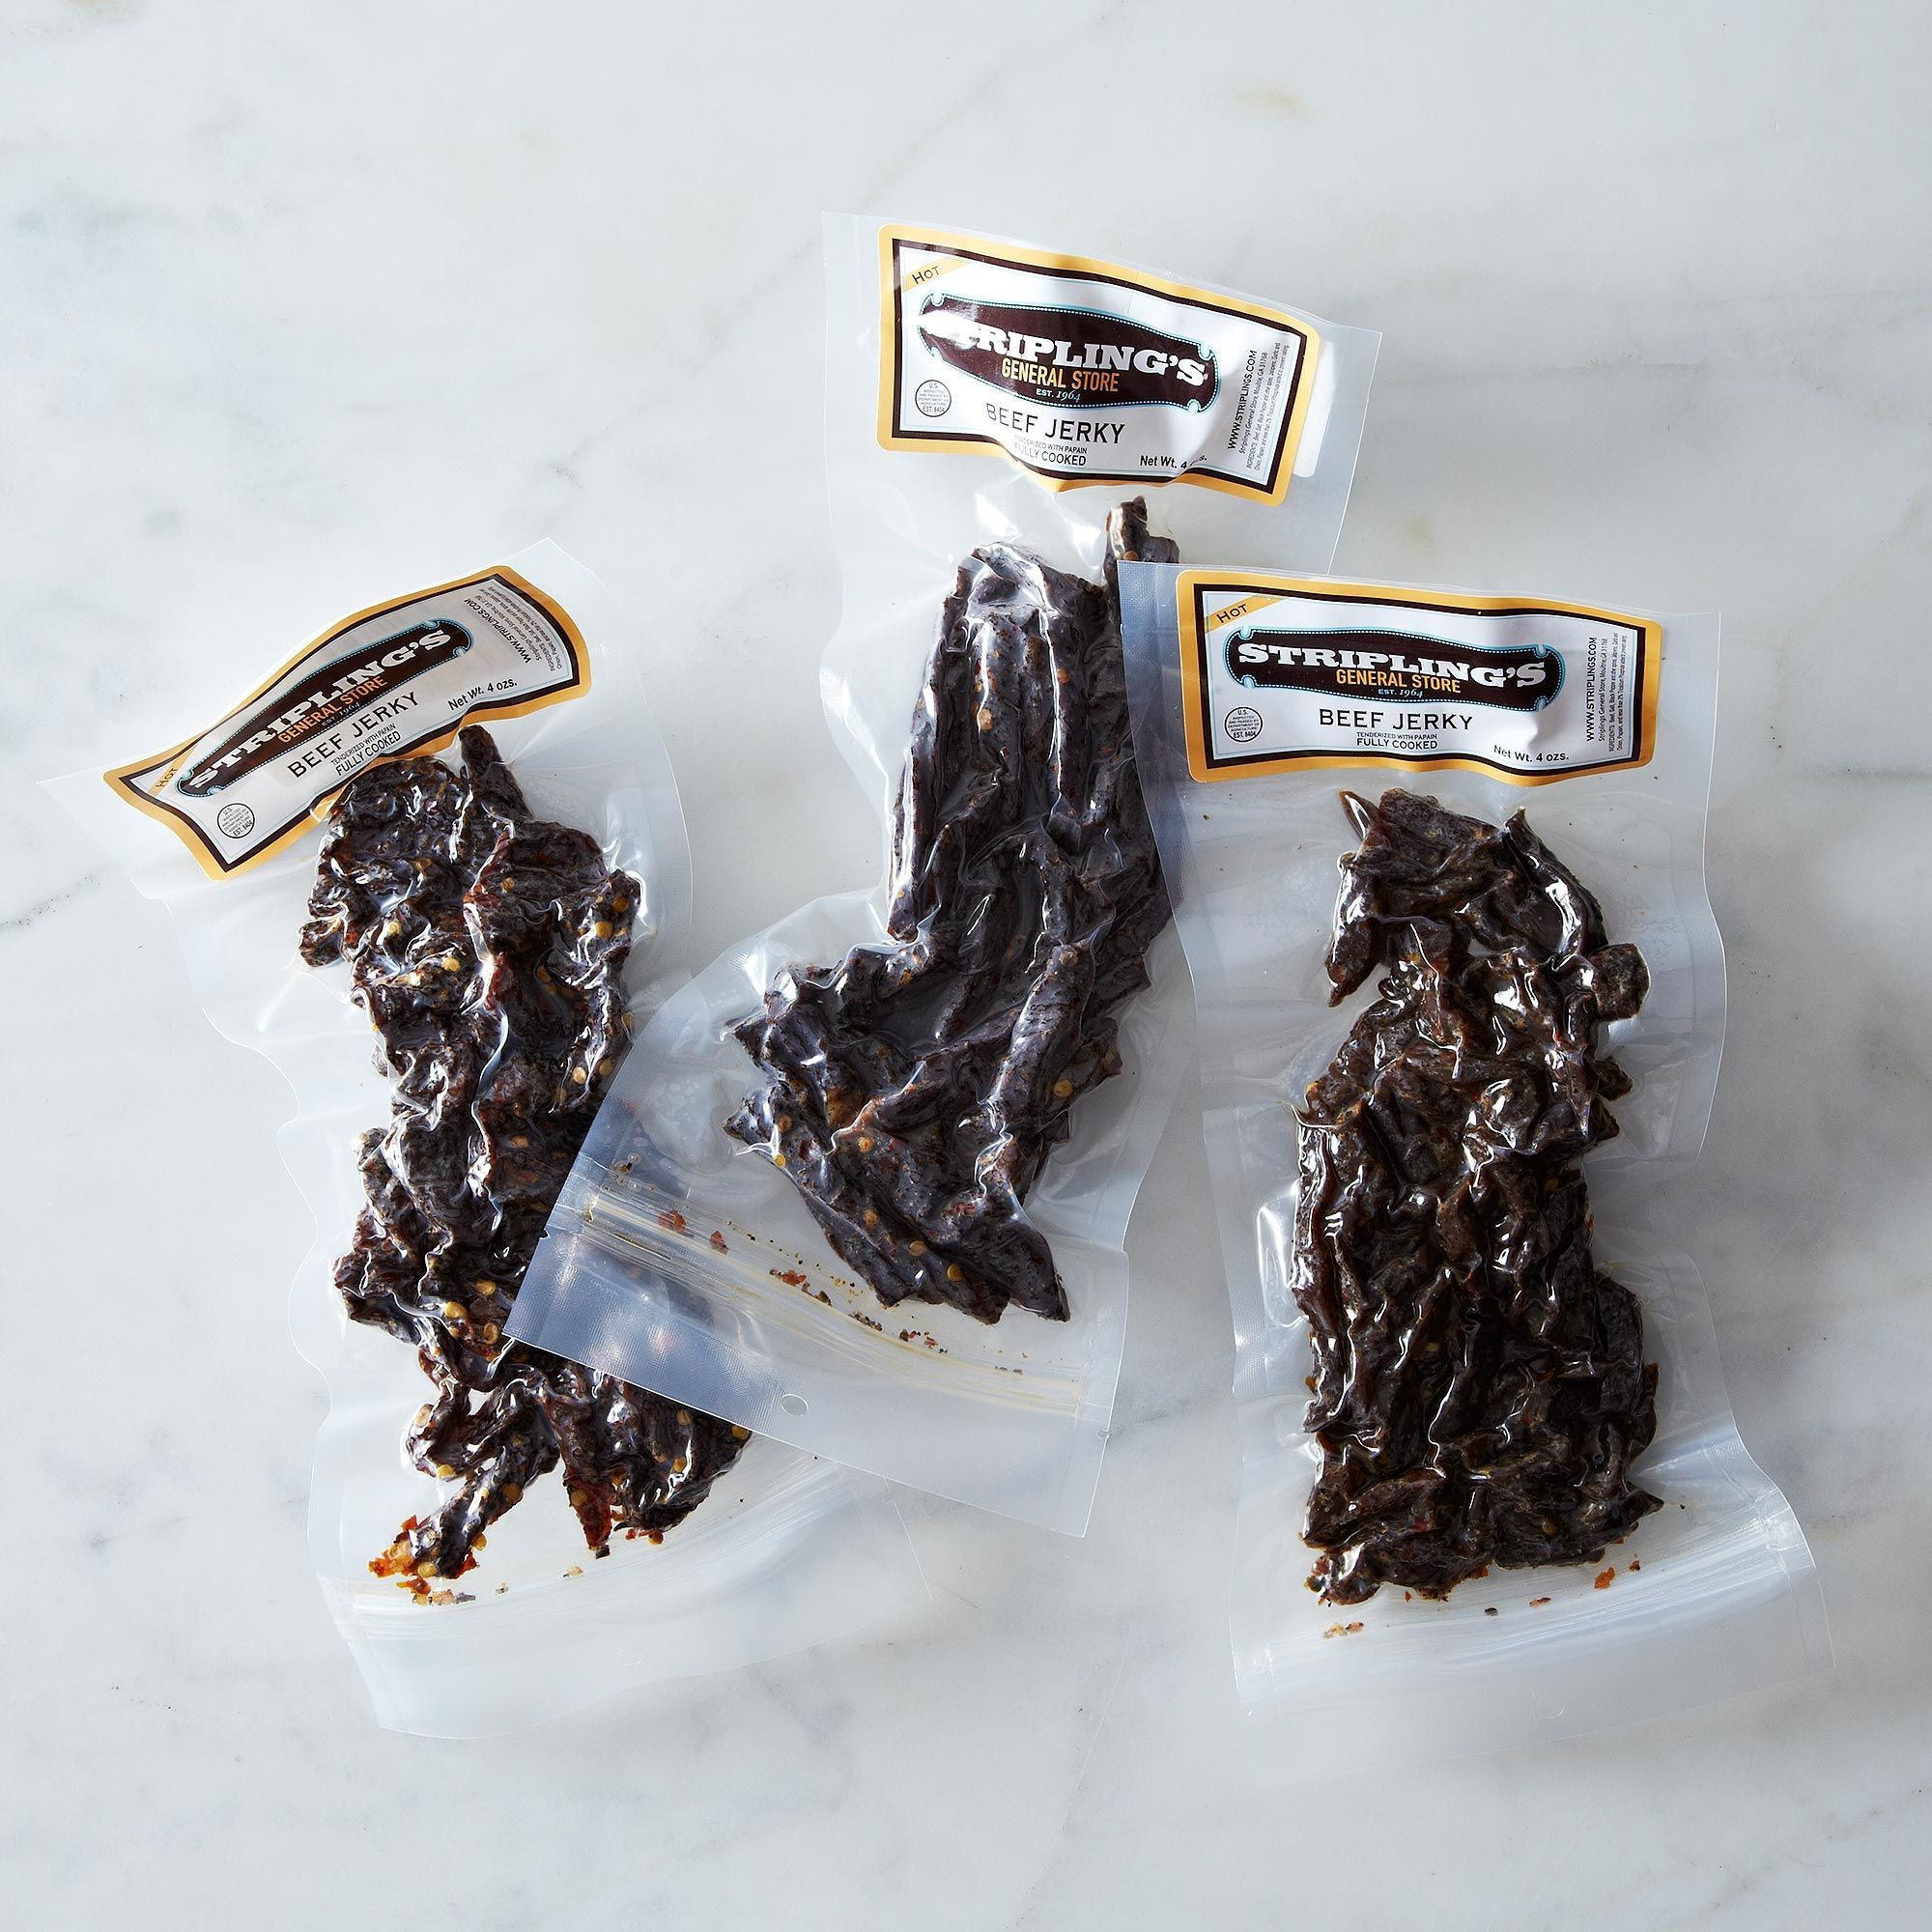 C030bd9c-a0f5-11e5-a190-0ef7535729df--2014-0109_striplings_beef-jerky_hot-005